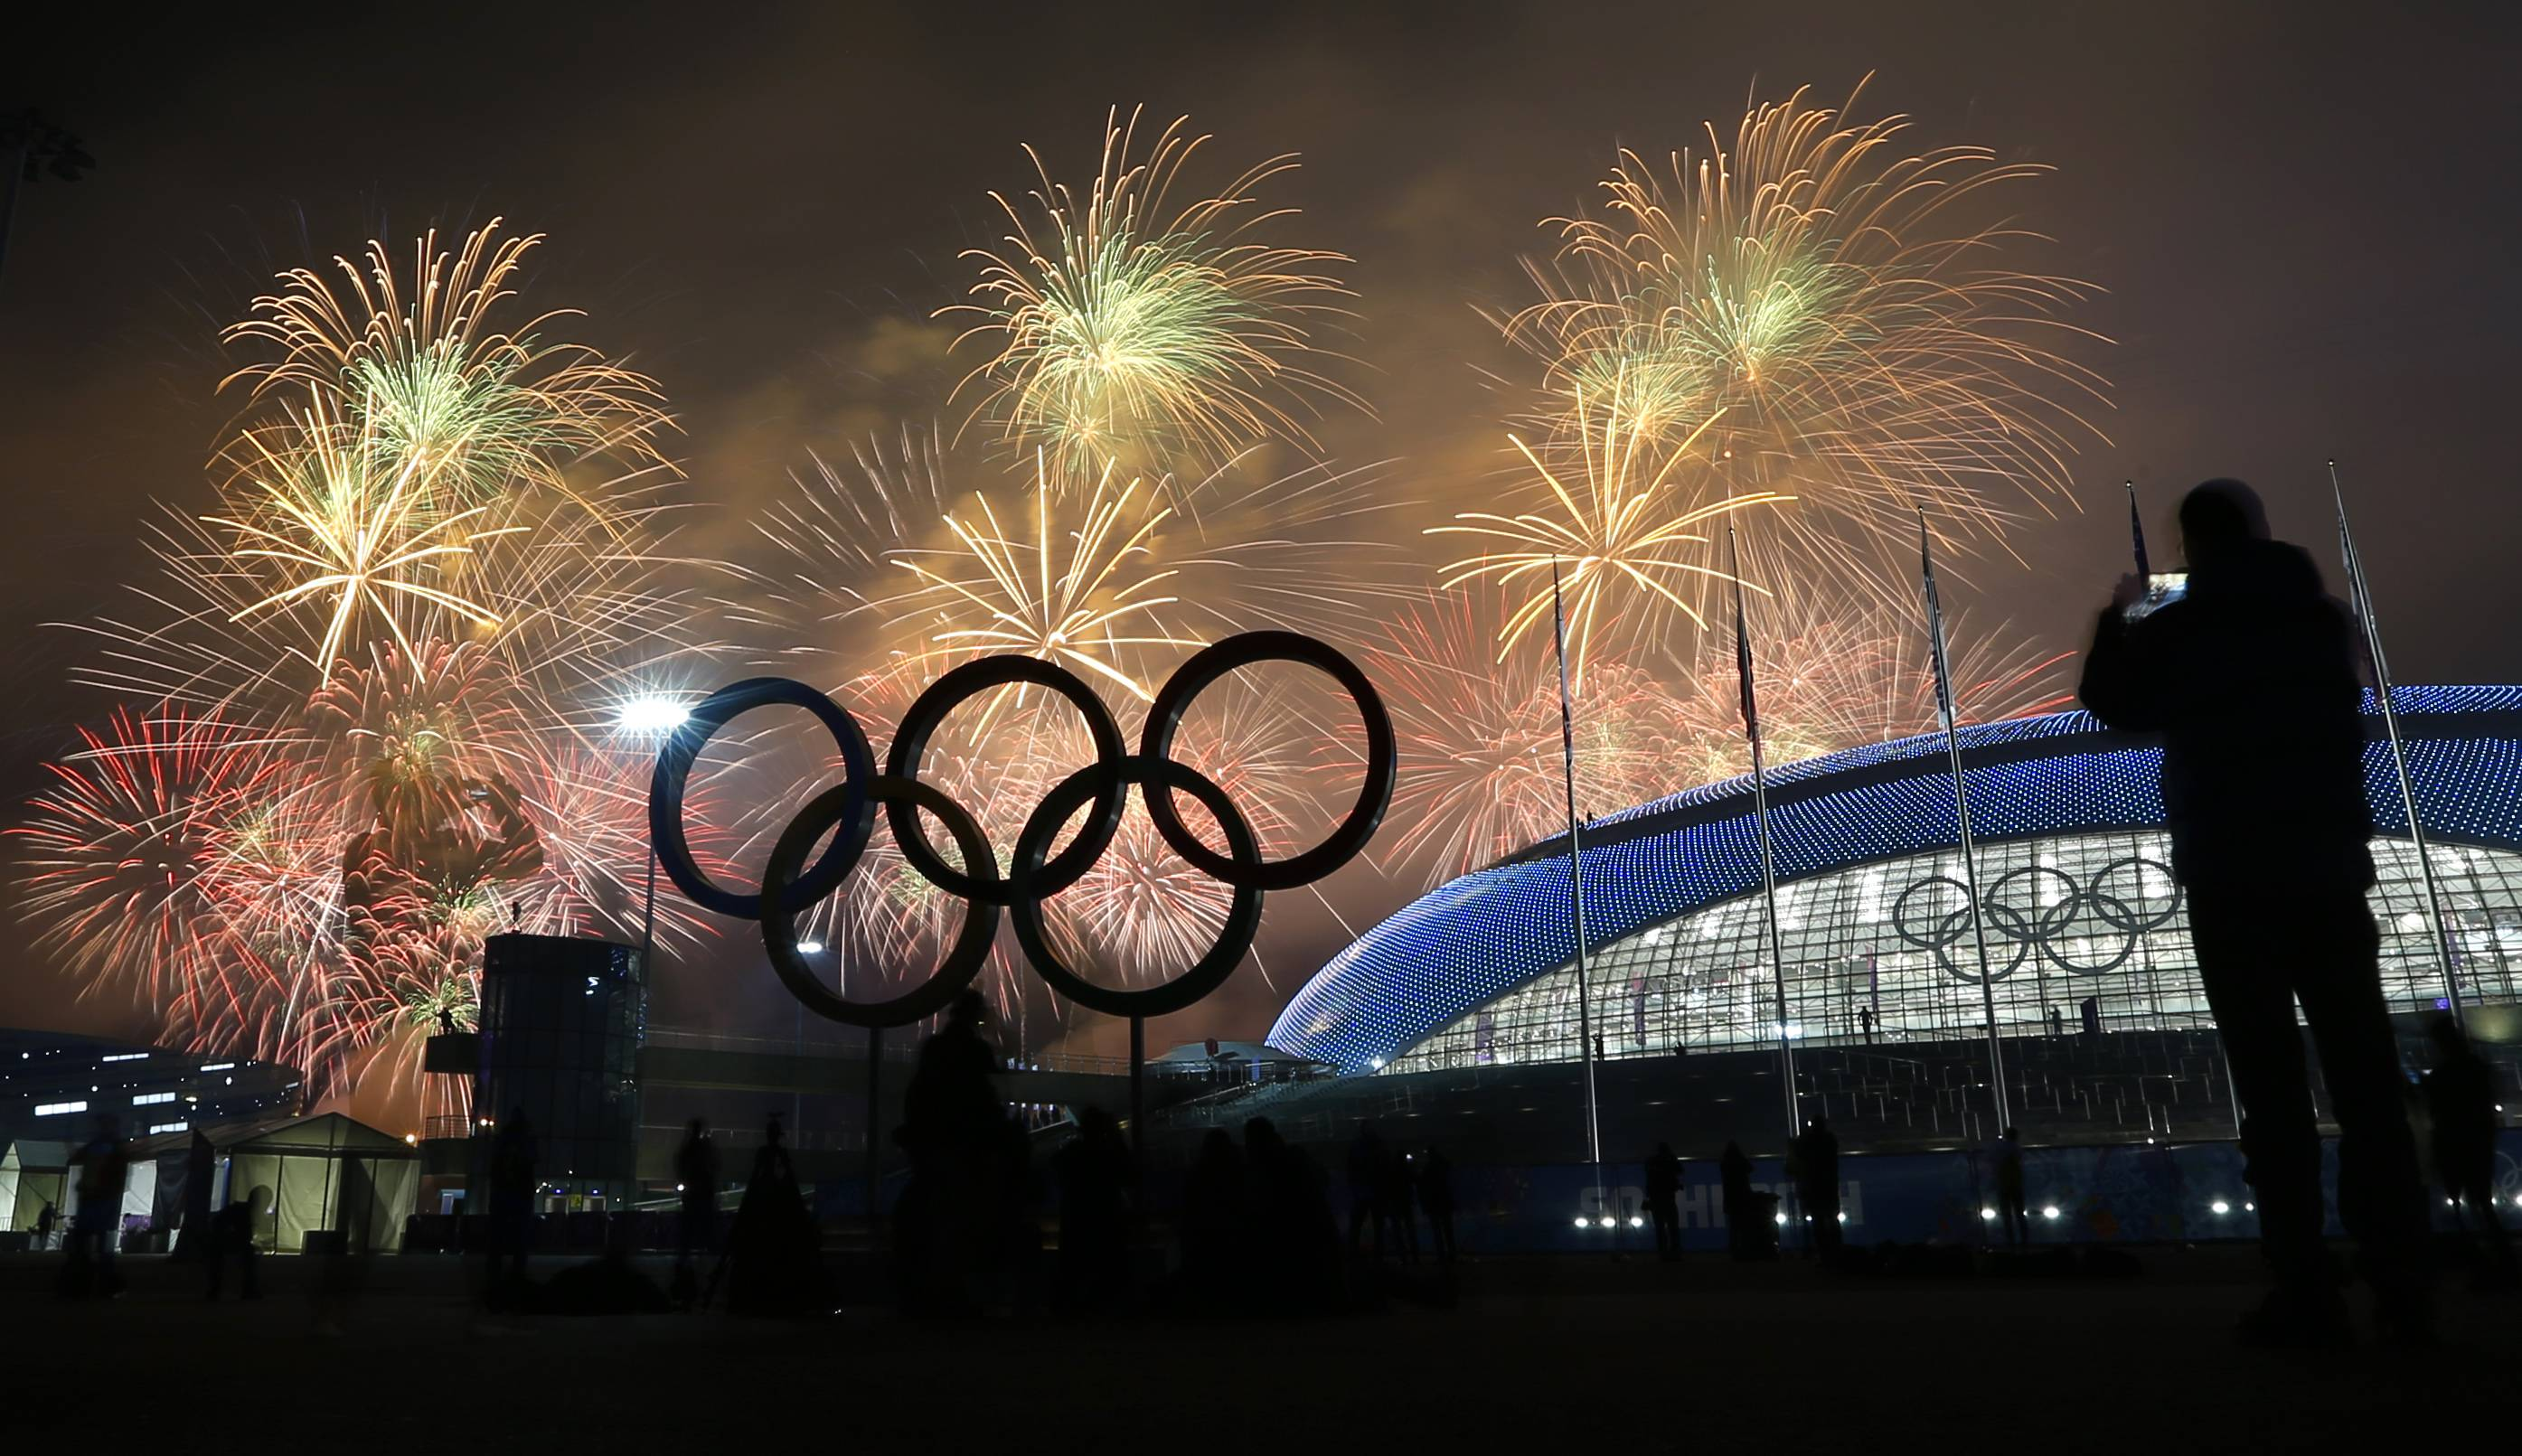 Man takes a photograph of fireworks during the closing ceremony of the 2014 Winter Olympics, Sunday, Feb. 23, 2014, in Sochi, Russia.